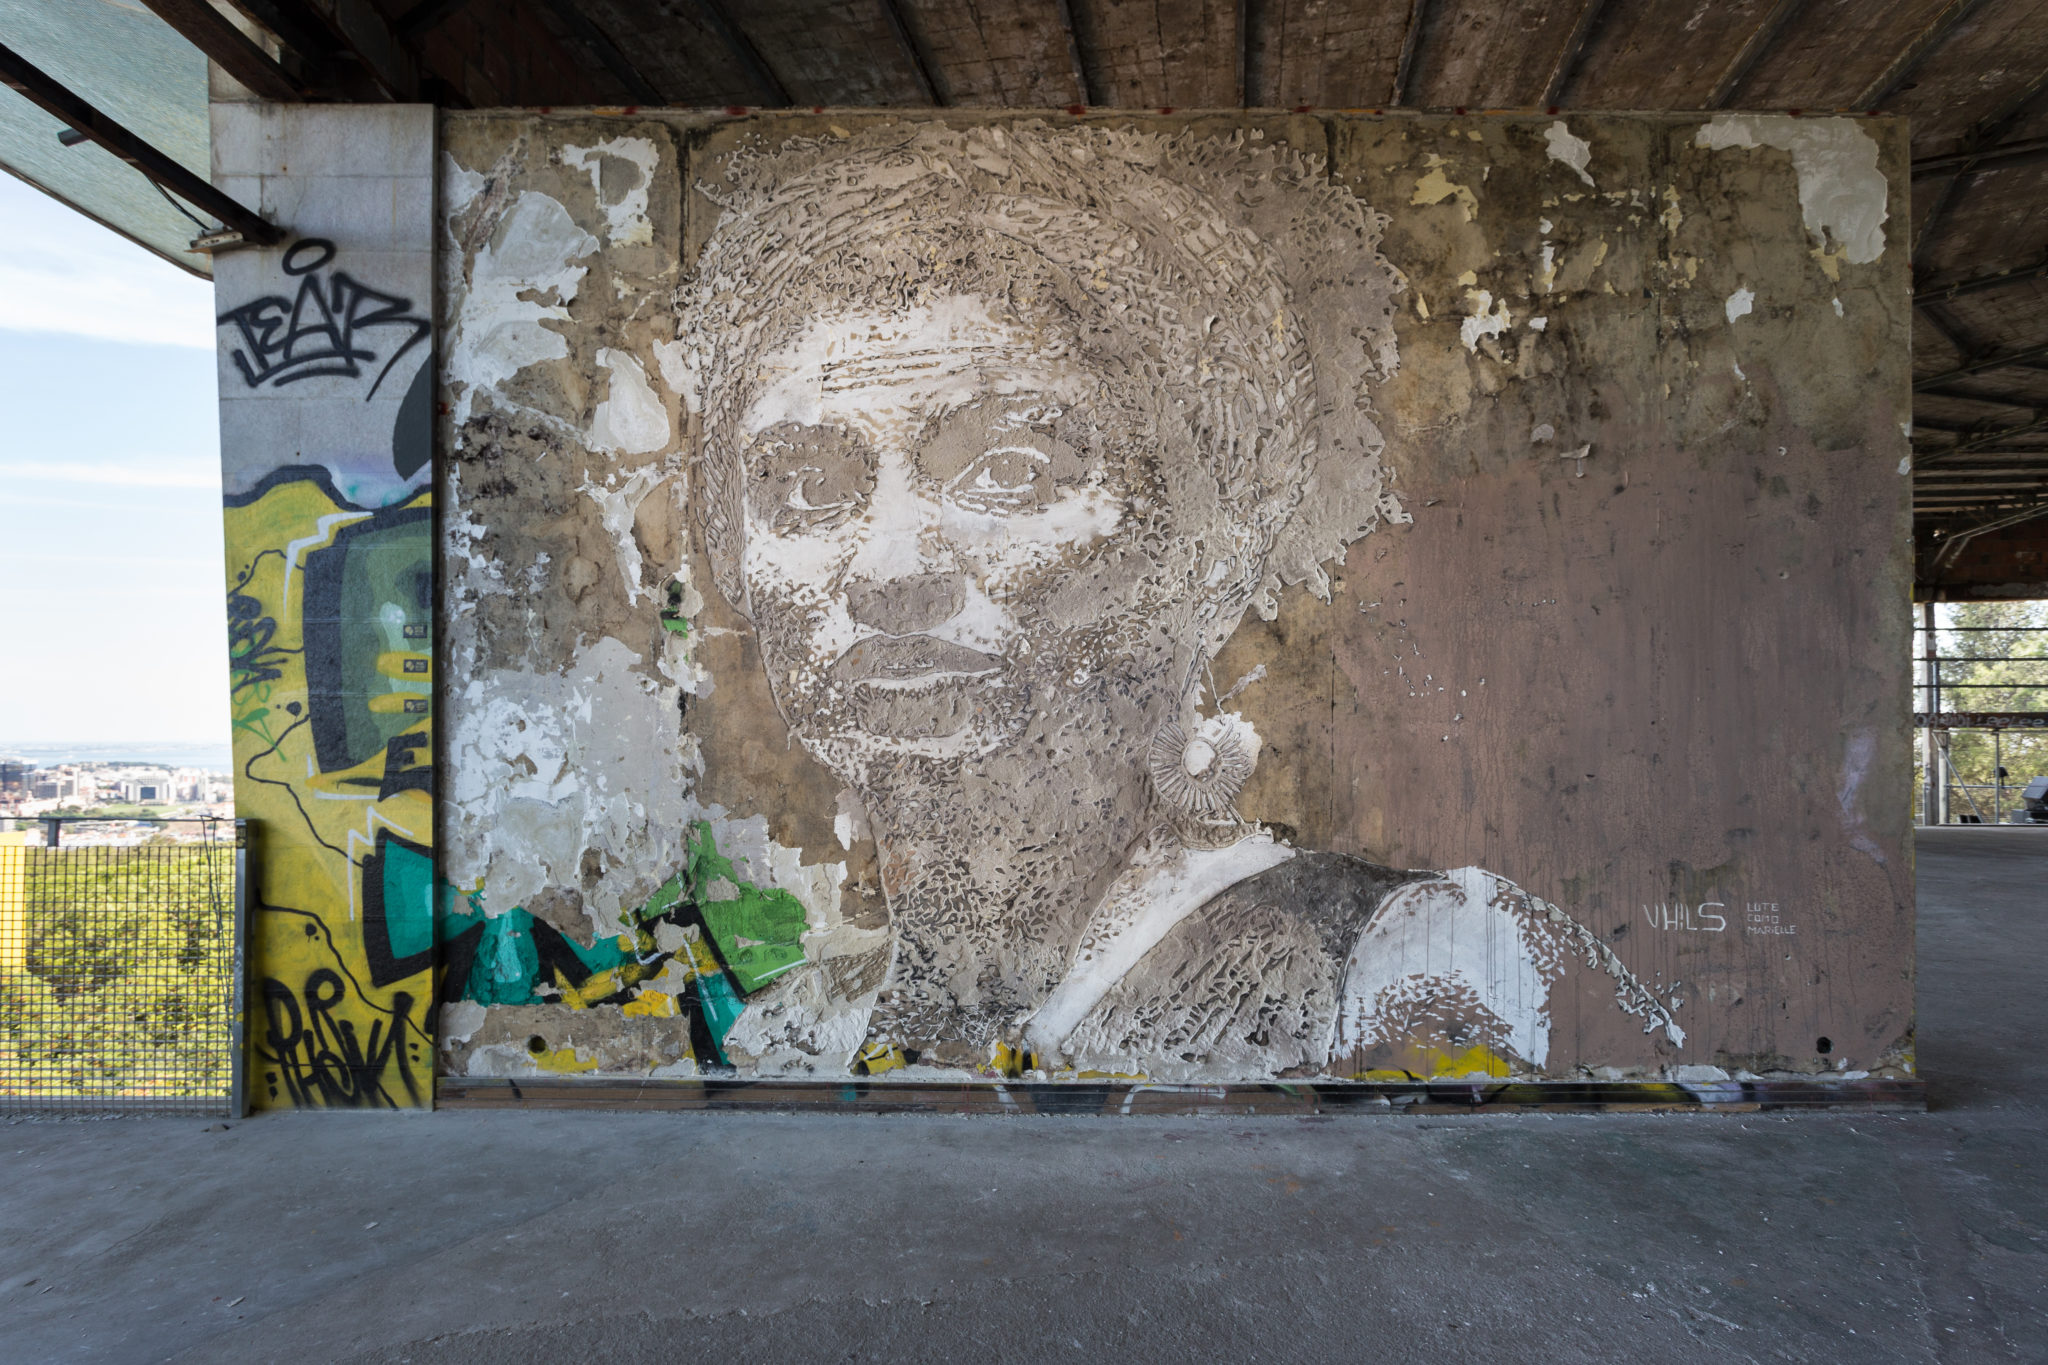 The fragile legacy of Brazil's slain human rights activist Marielle Franco